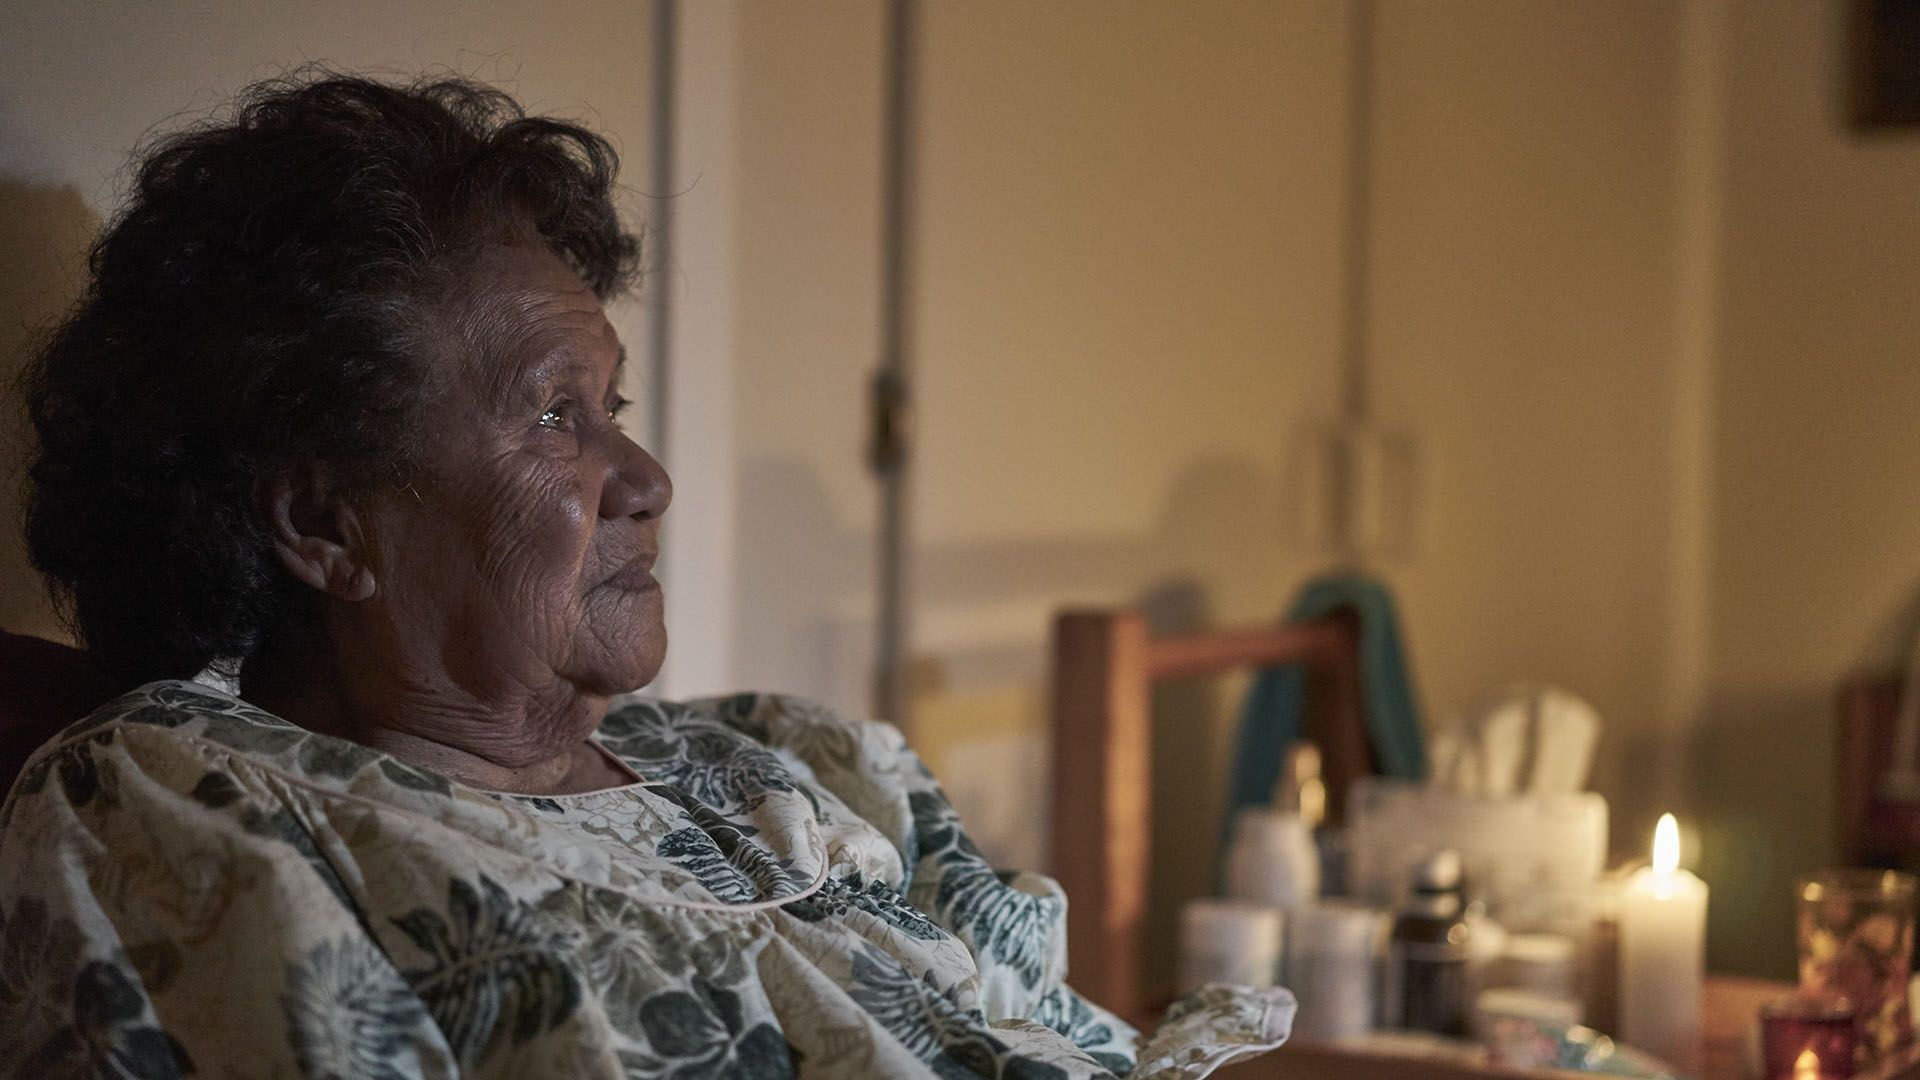 The matriarch of a large Polynesian family lies bedridden